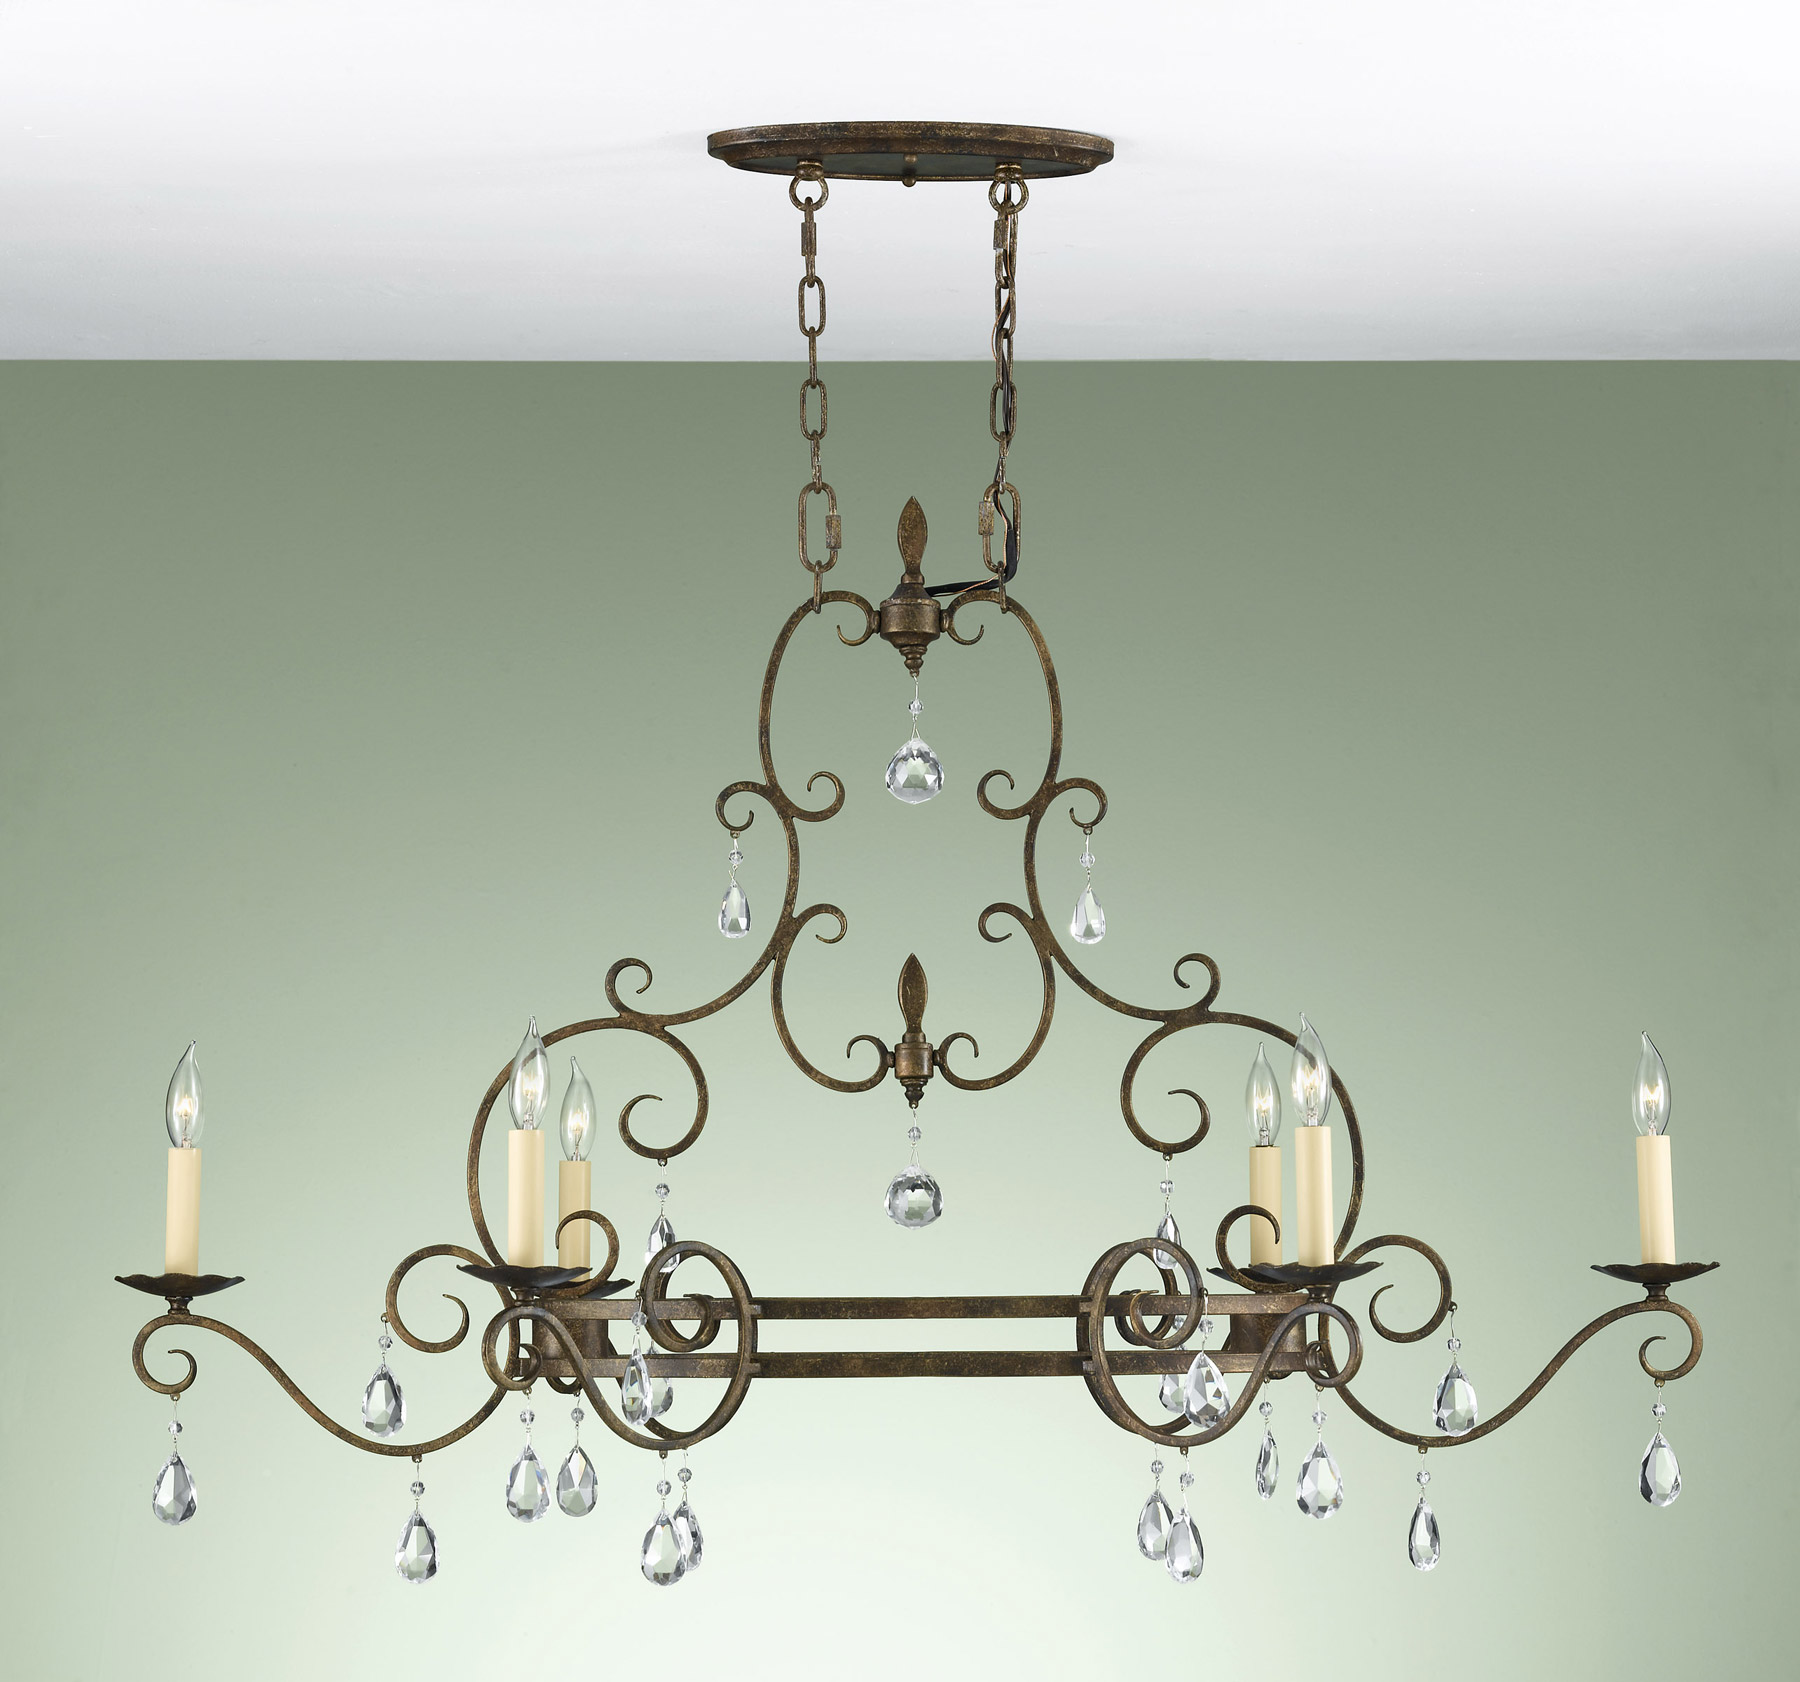 Feiss F23046MBZ Crystal Chateau Chandelier – Murray Feiss Chandeliers